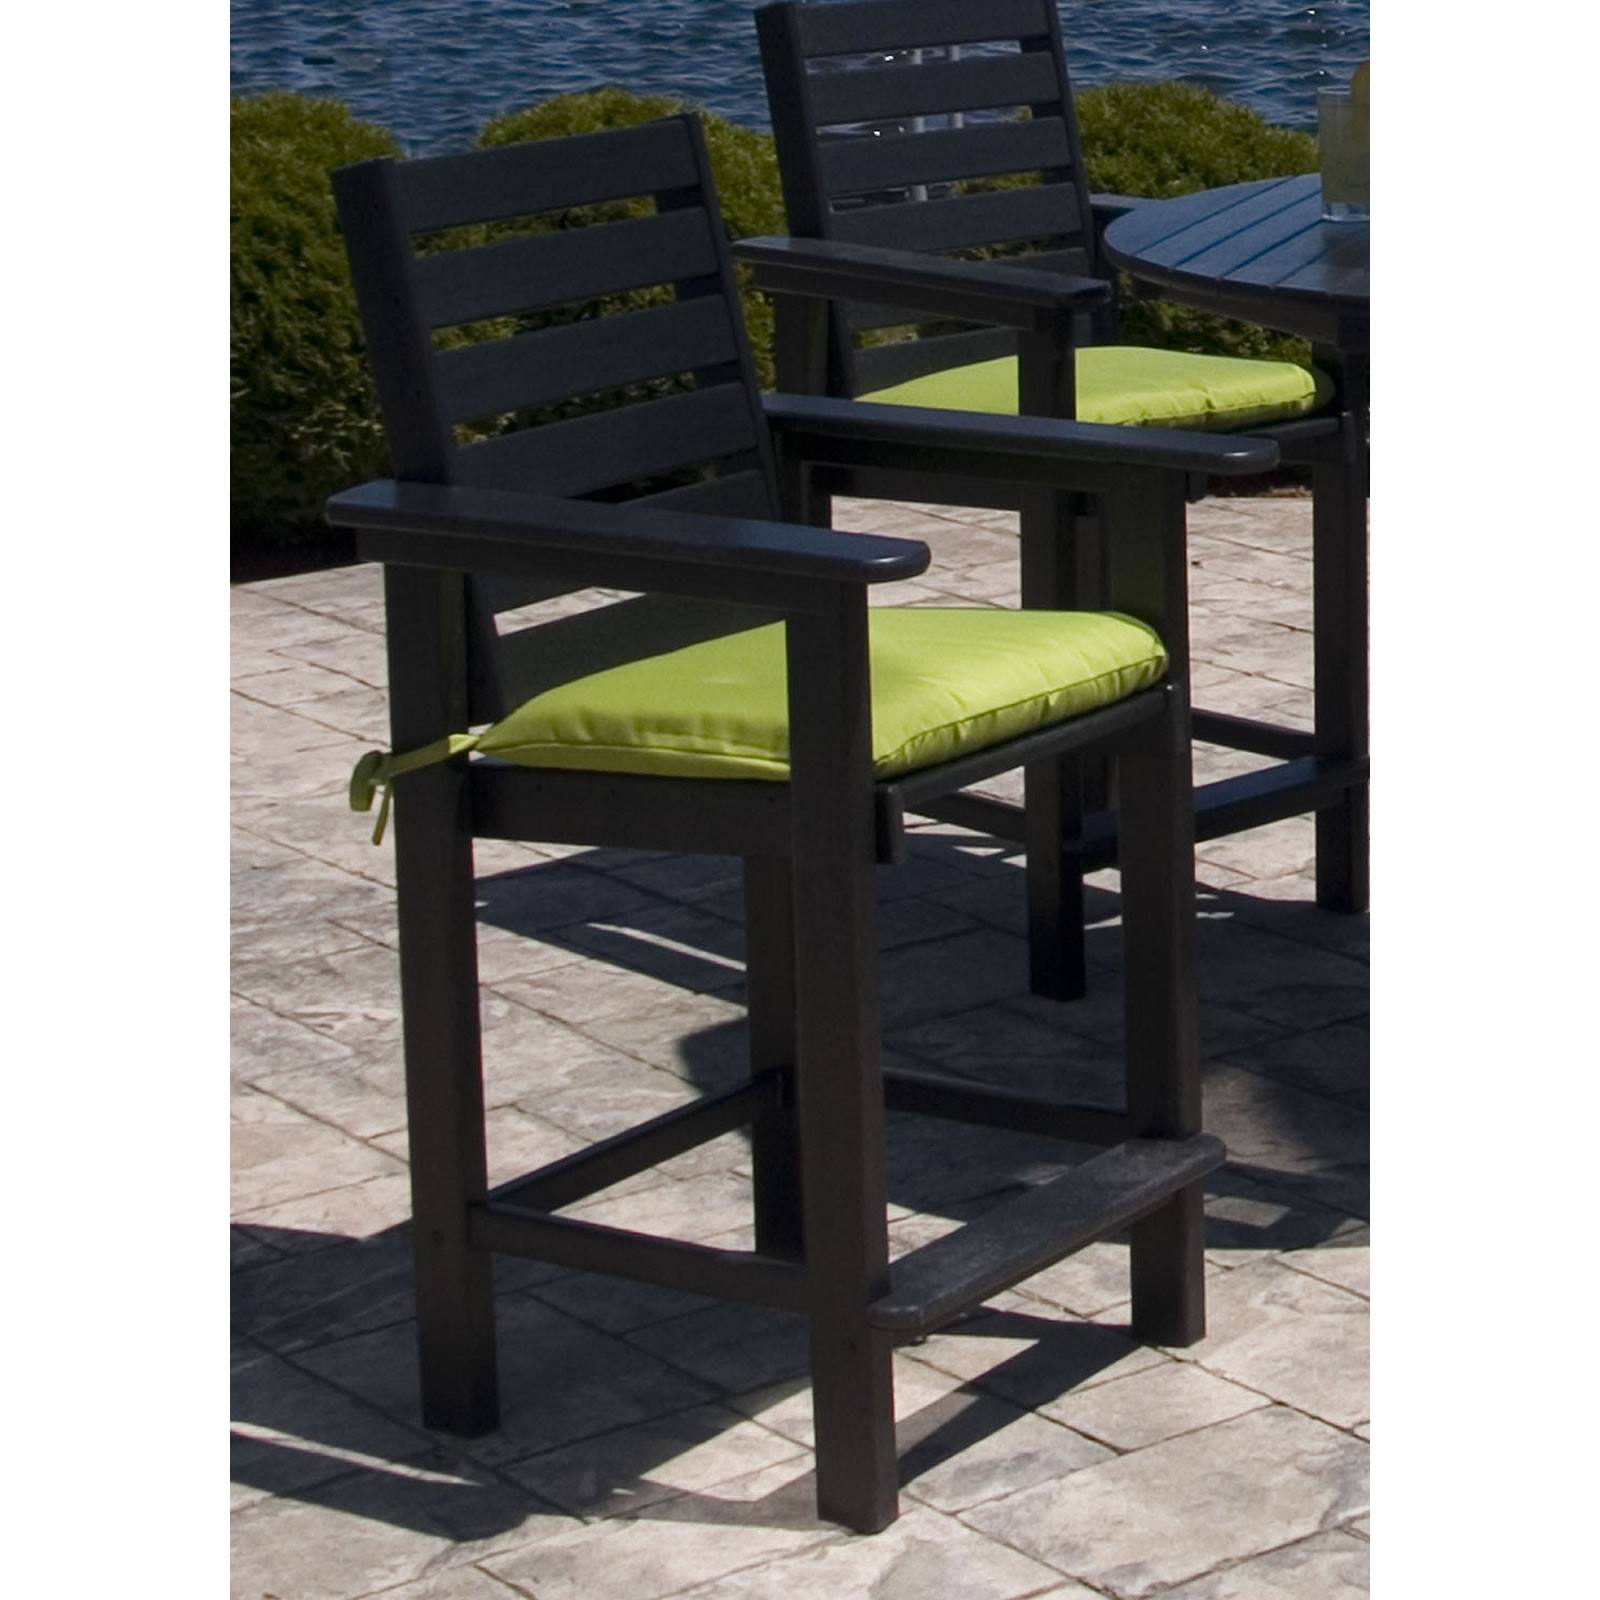 POLYWOOD Captains Counter Chair Captains POLYWOOD Outdoor Furniture Collections